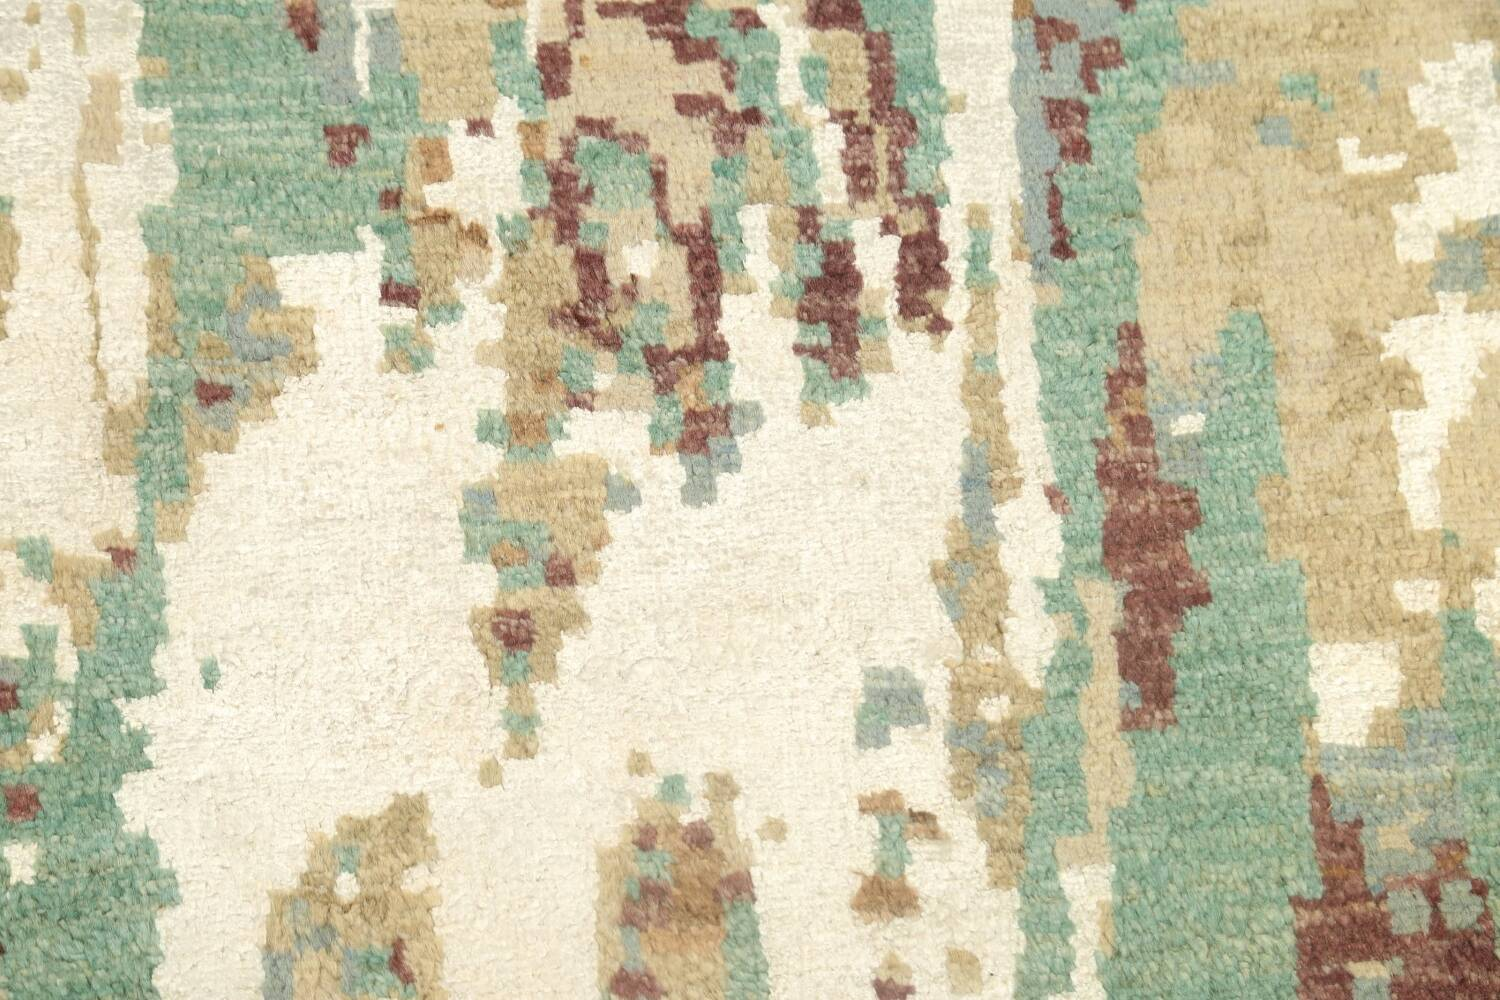 Vegetable Dye Contemporary Abstract Oriental Area Rug 6x9 image 11